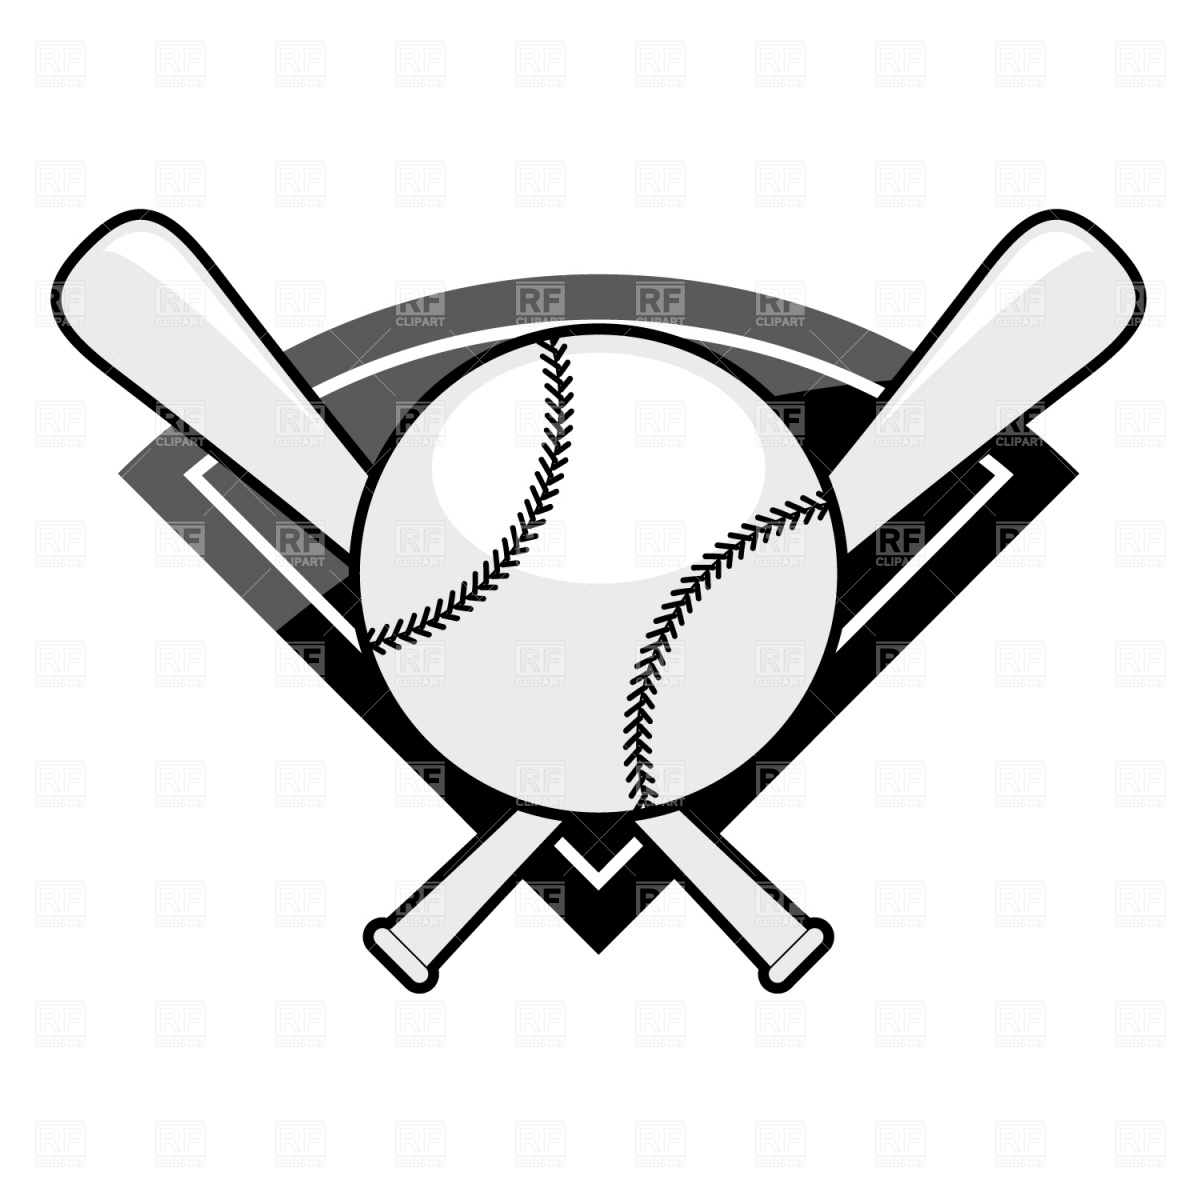 1200x1200 Best Photos Of Baseball Bat Vector Logo